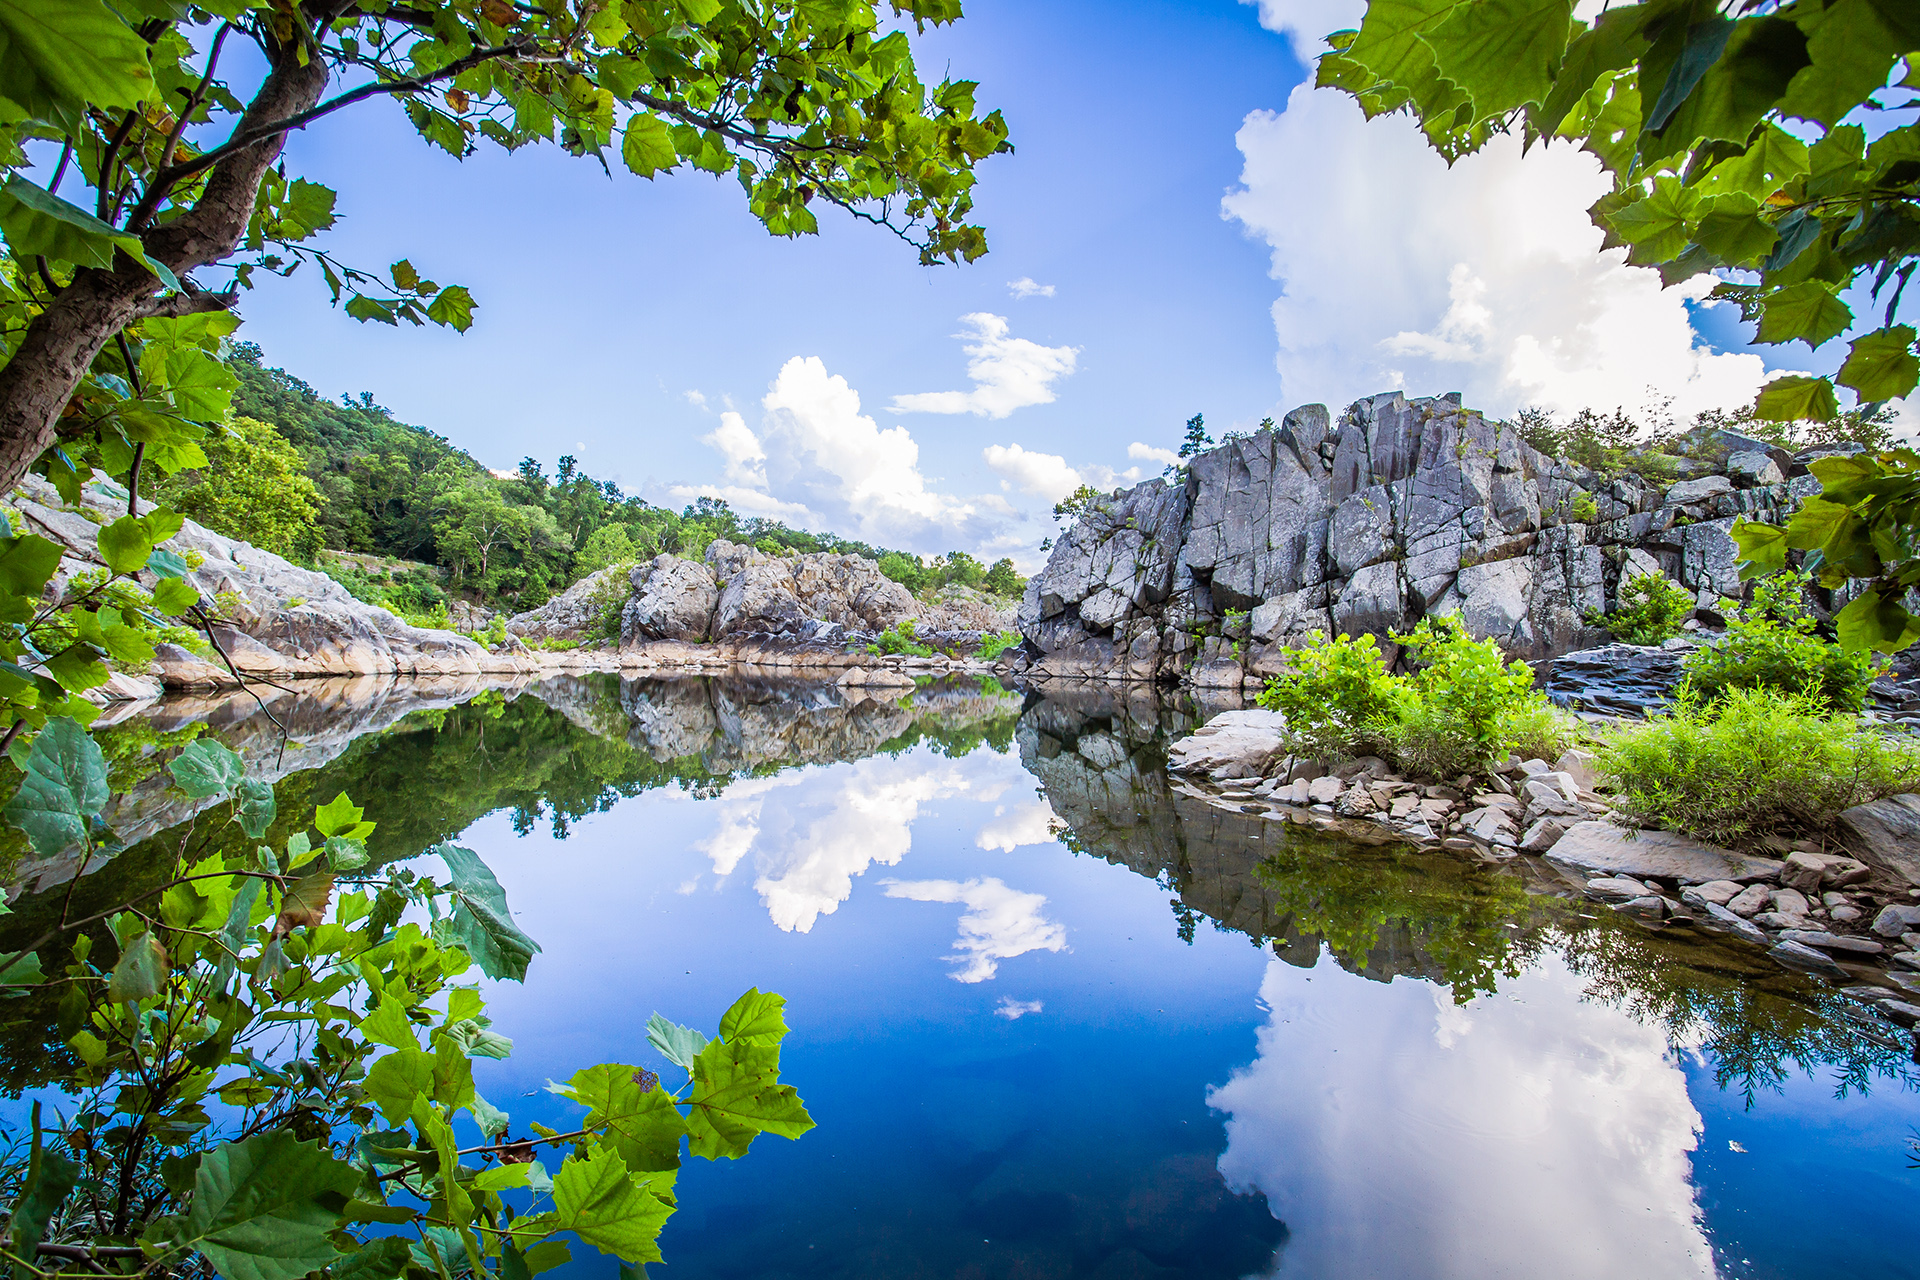 Lagoon at Great Falls reflecting cloudy sky